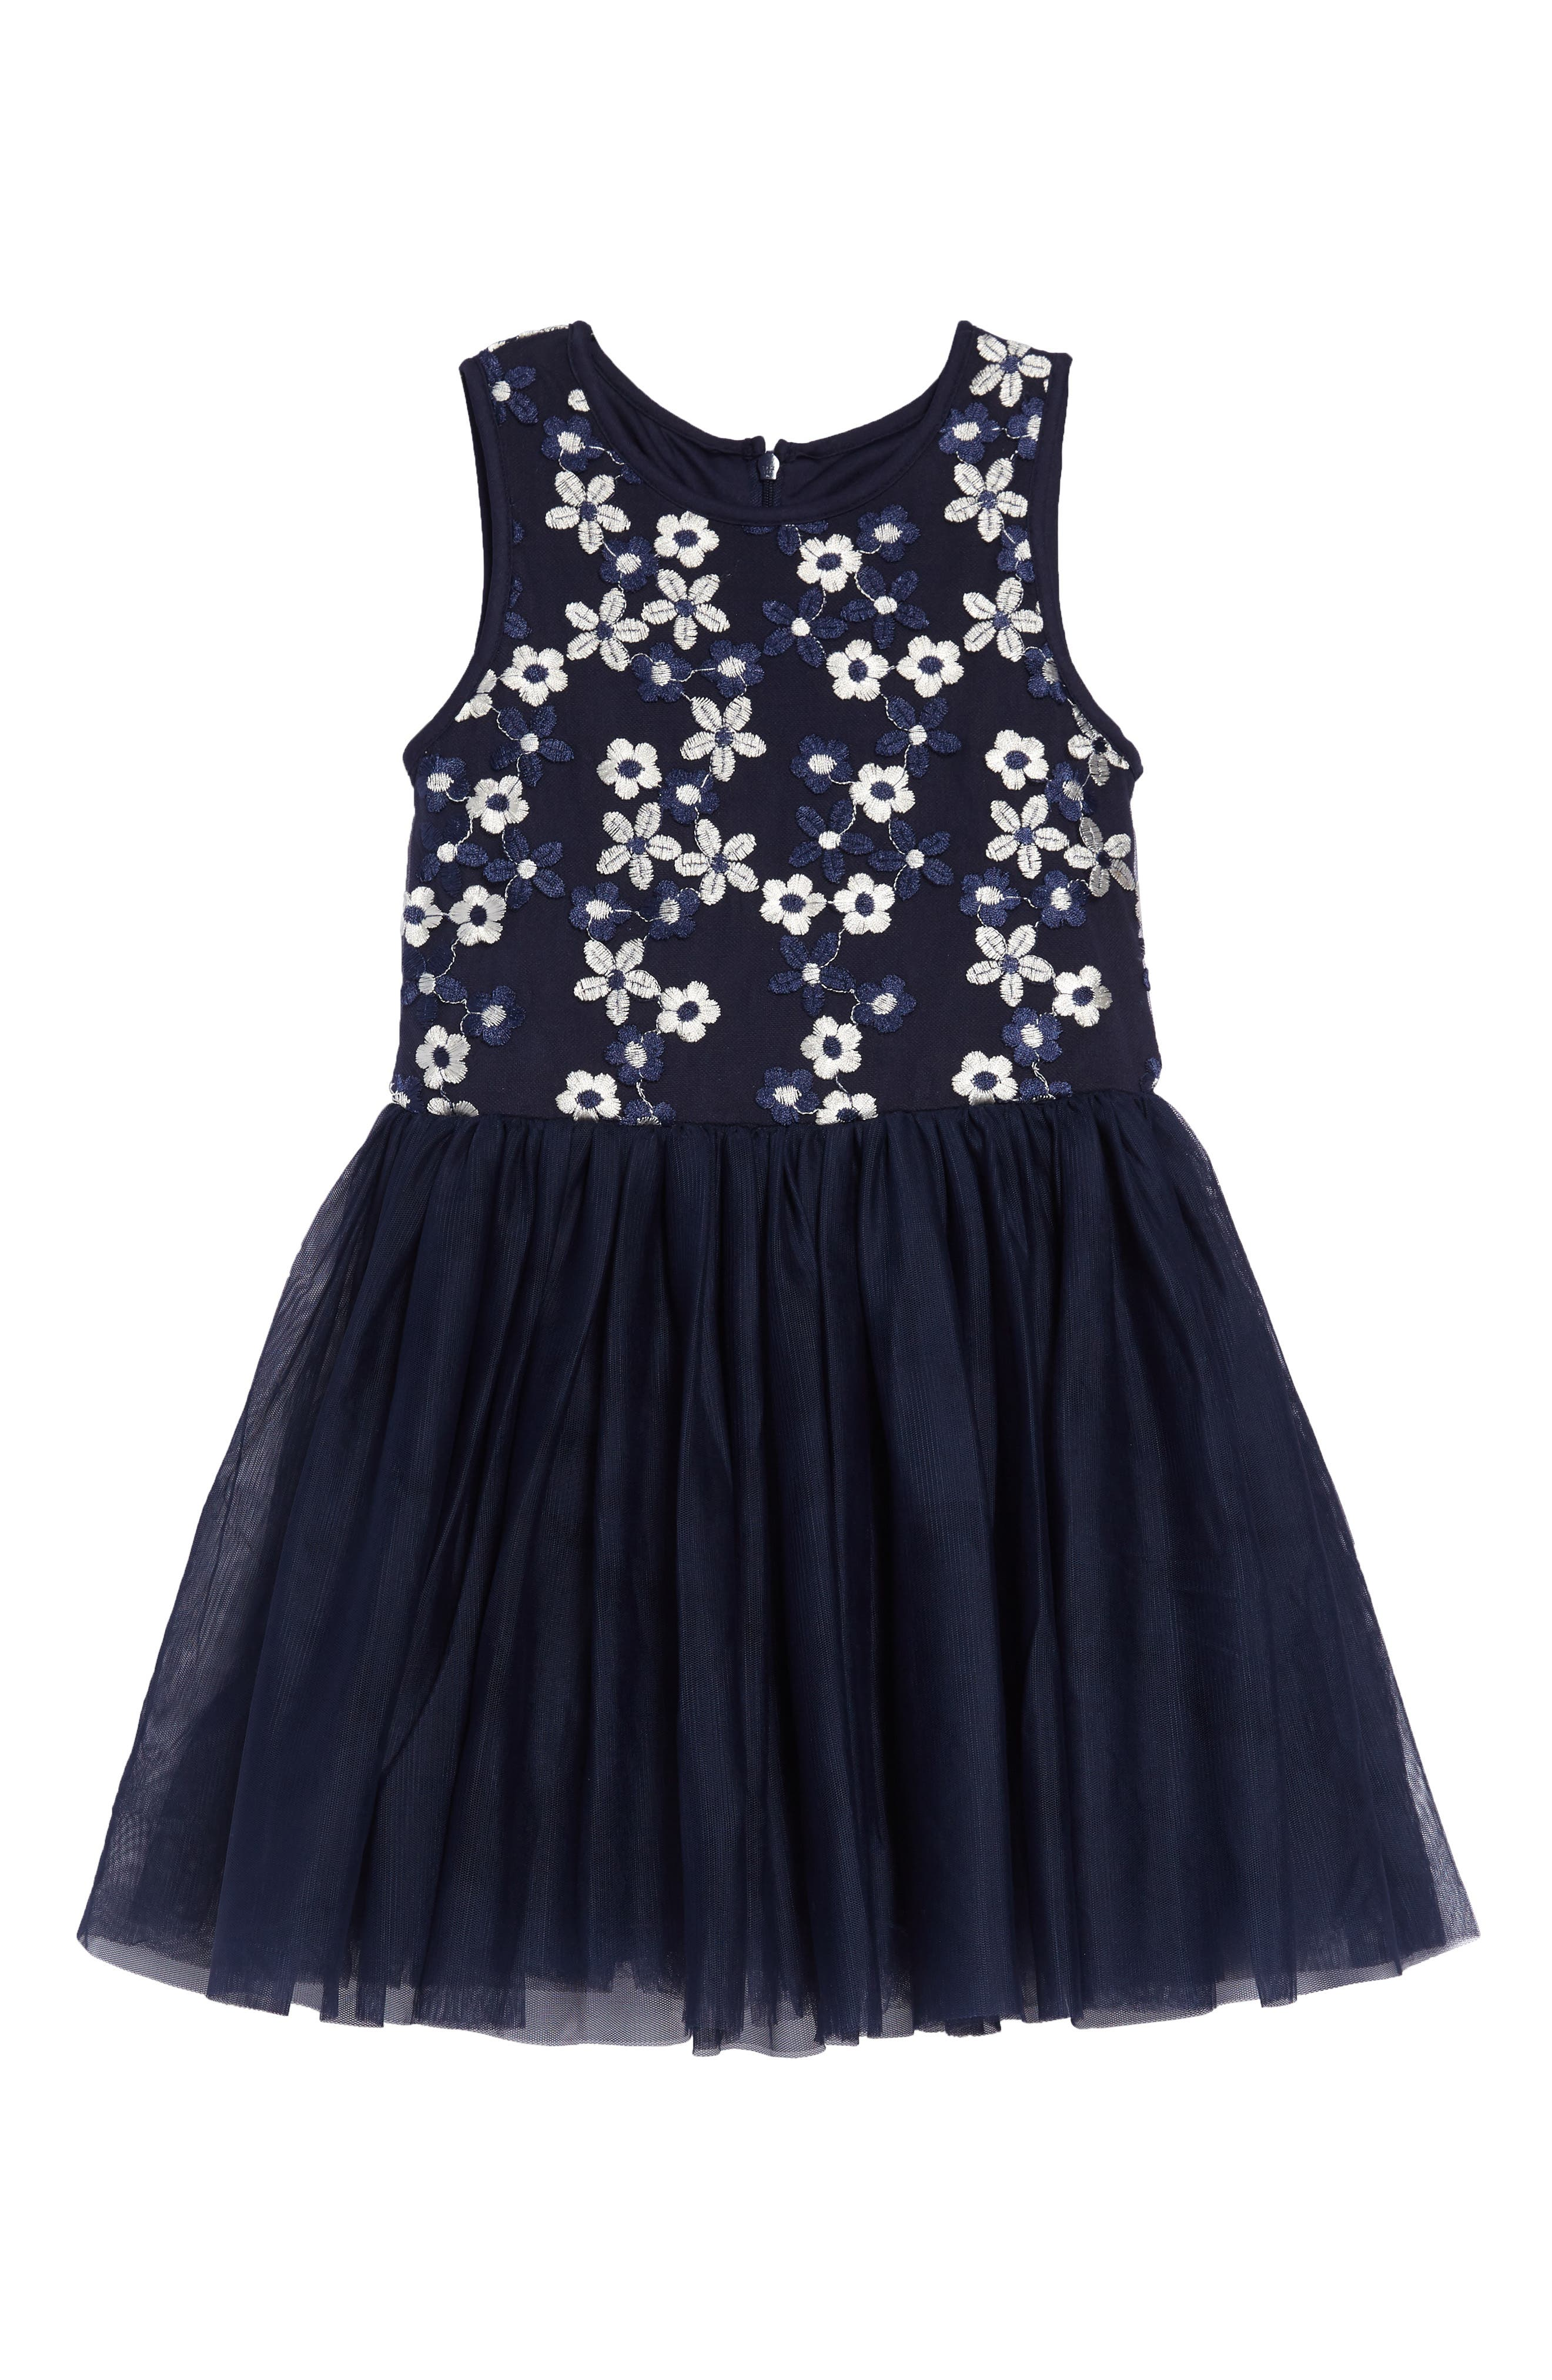 baeb69a0c915 Girl's Pastourelle By Pippa & Julie Daisy Embroidered Fit & Flare Dress,  Blue